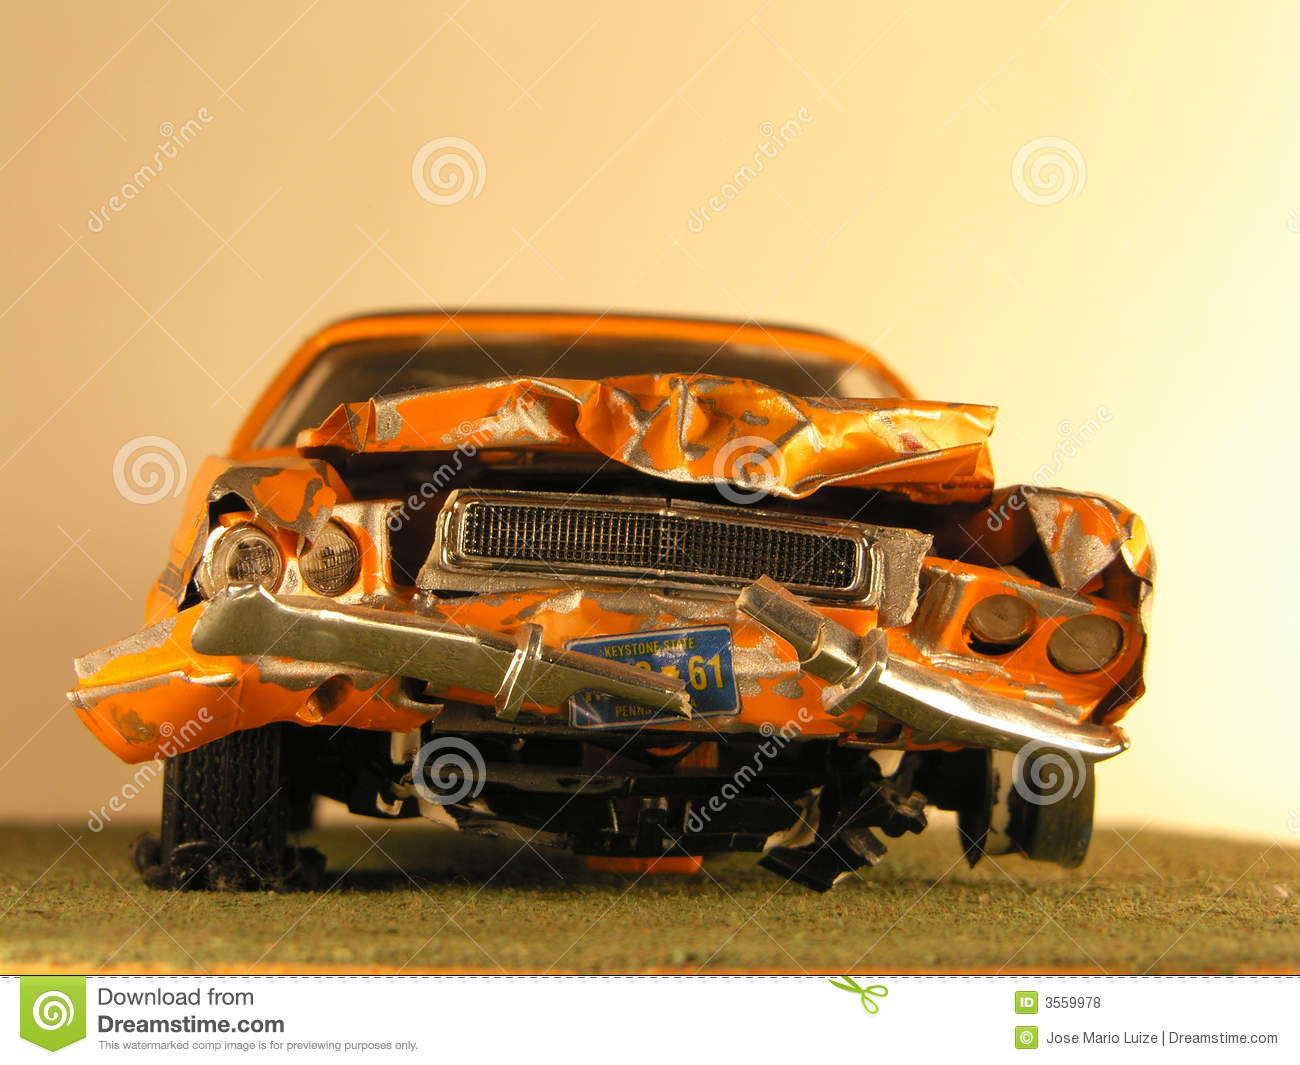 Plastic Model Of A Muscle Car Stock Photo - Image: 3559978